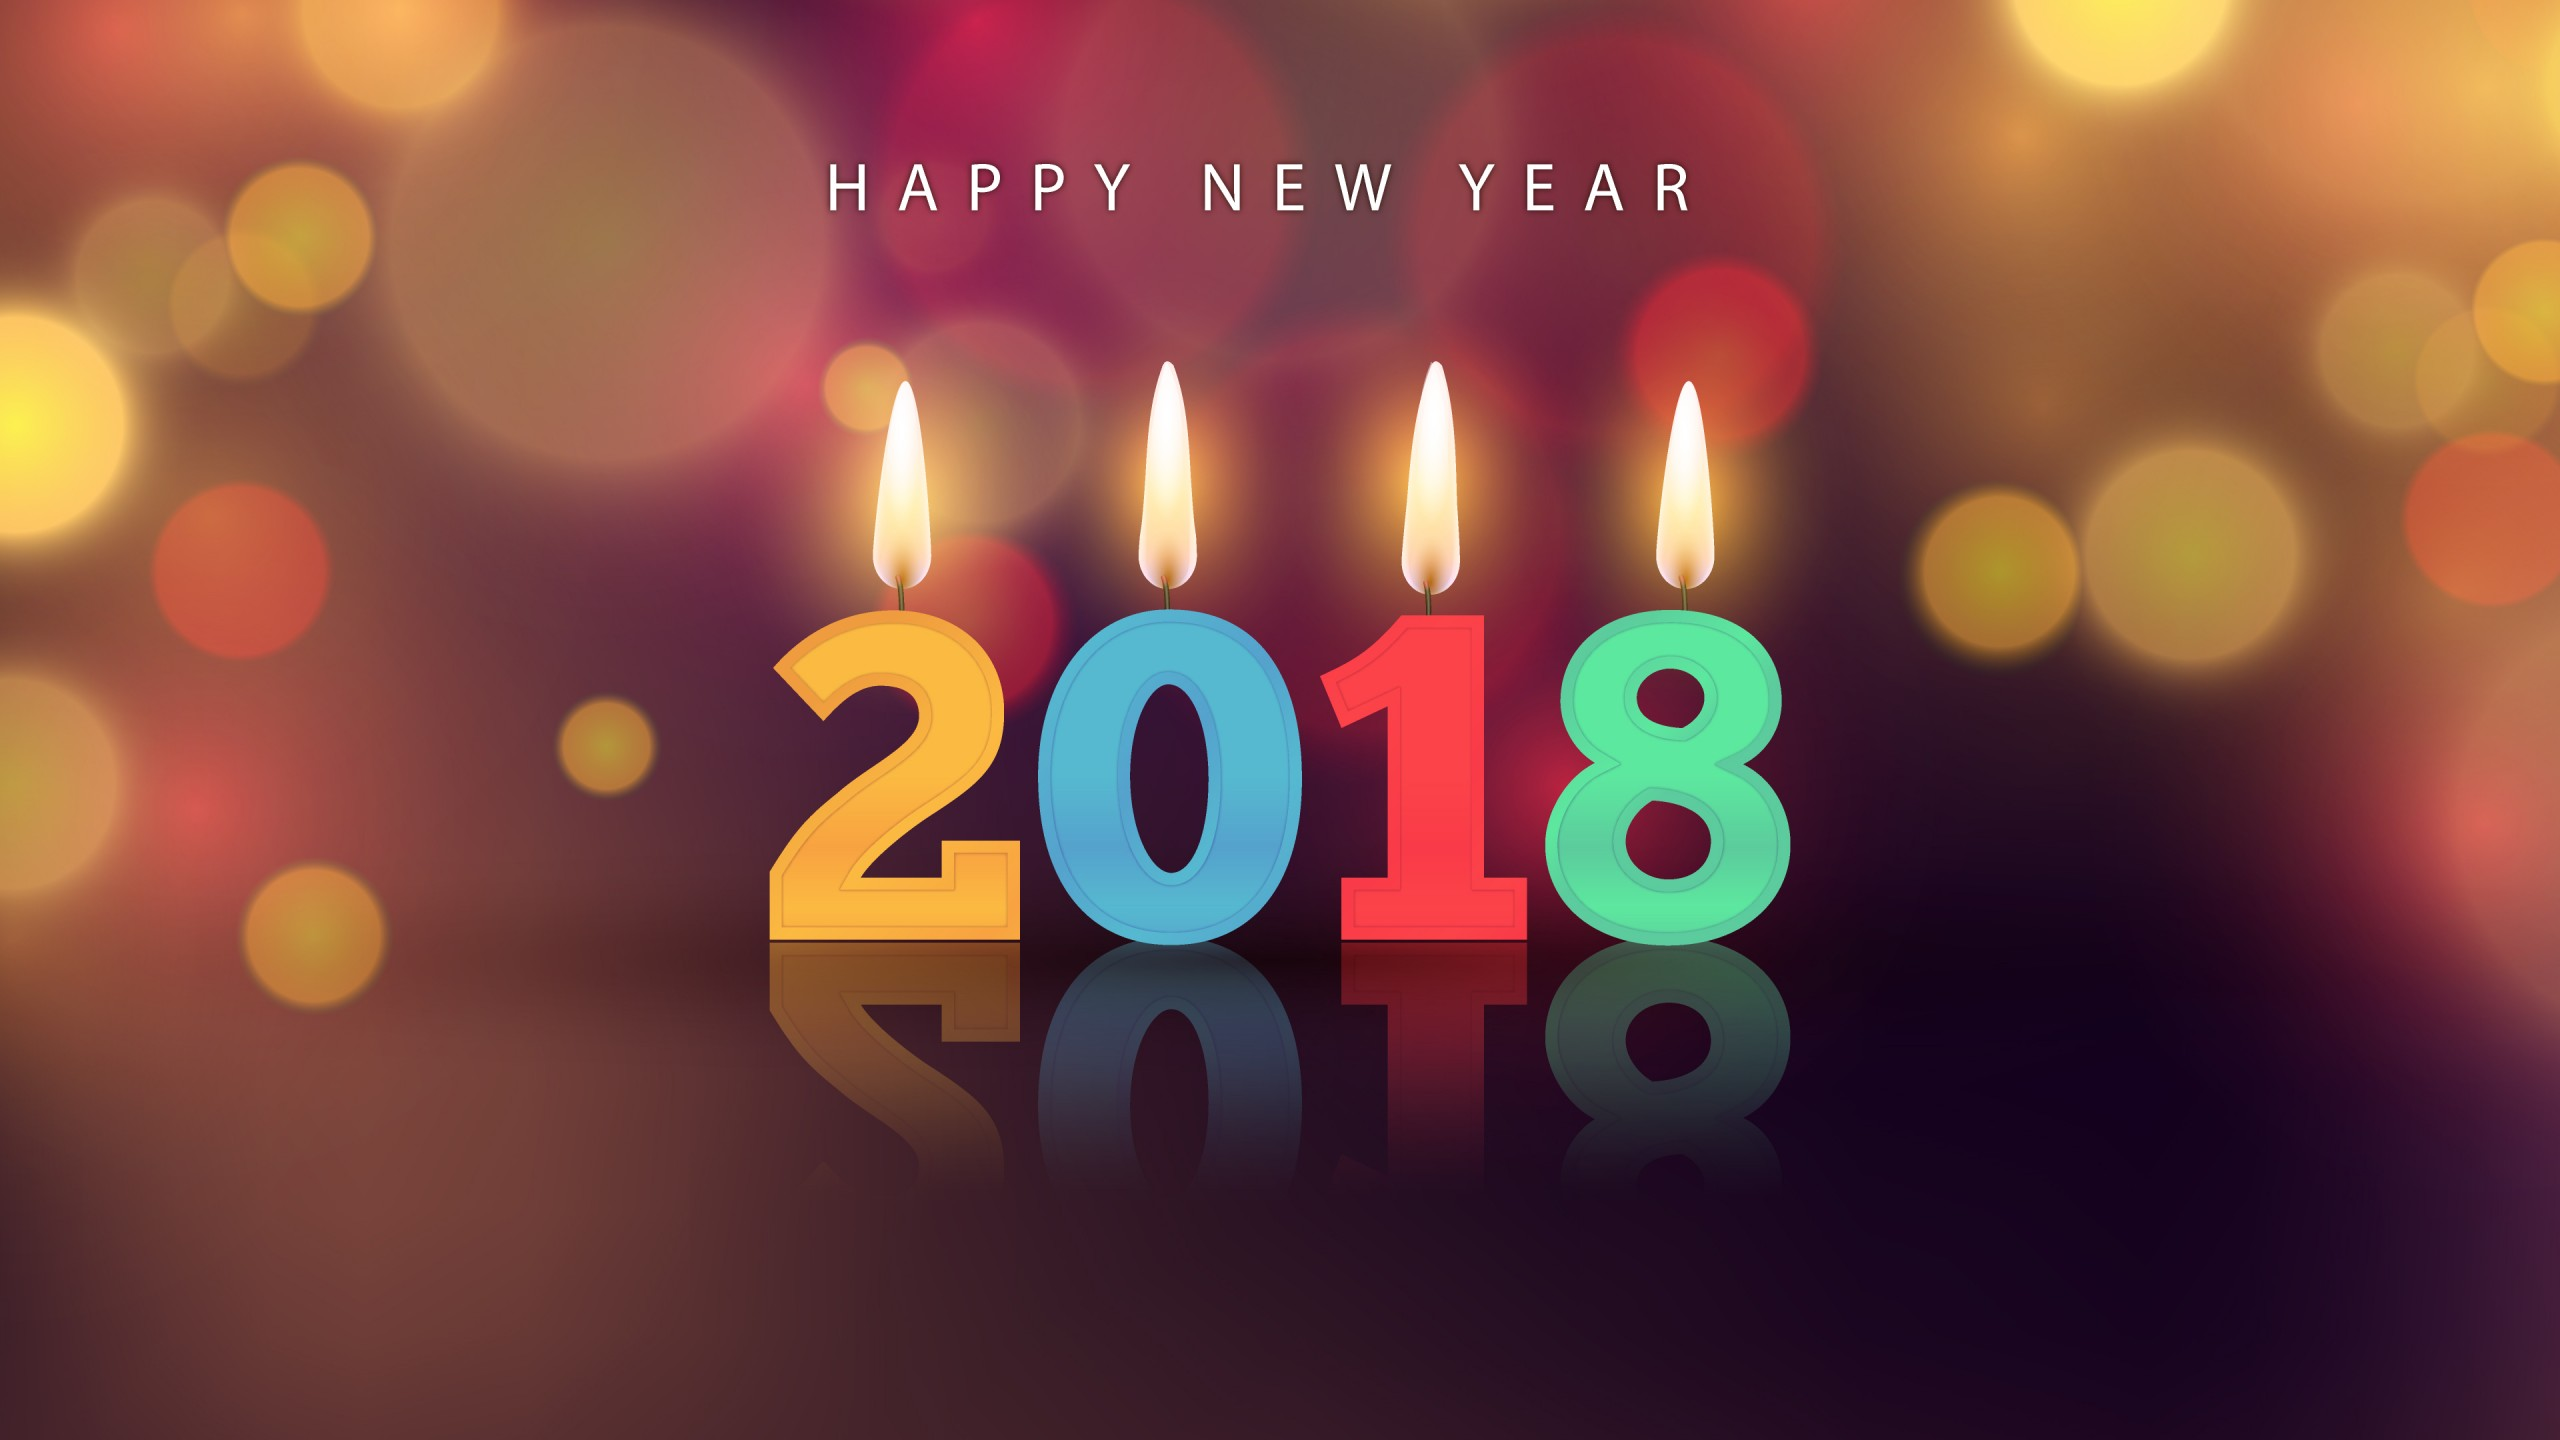 happy new year wallpapers 2018 hd images free download 1